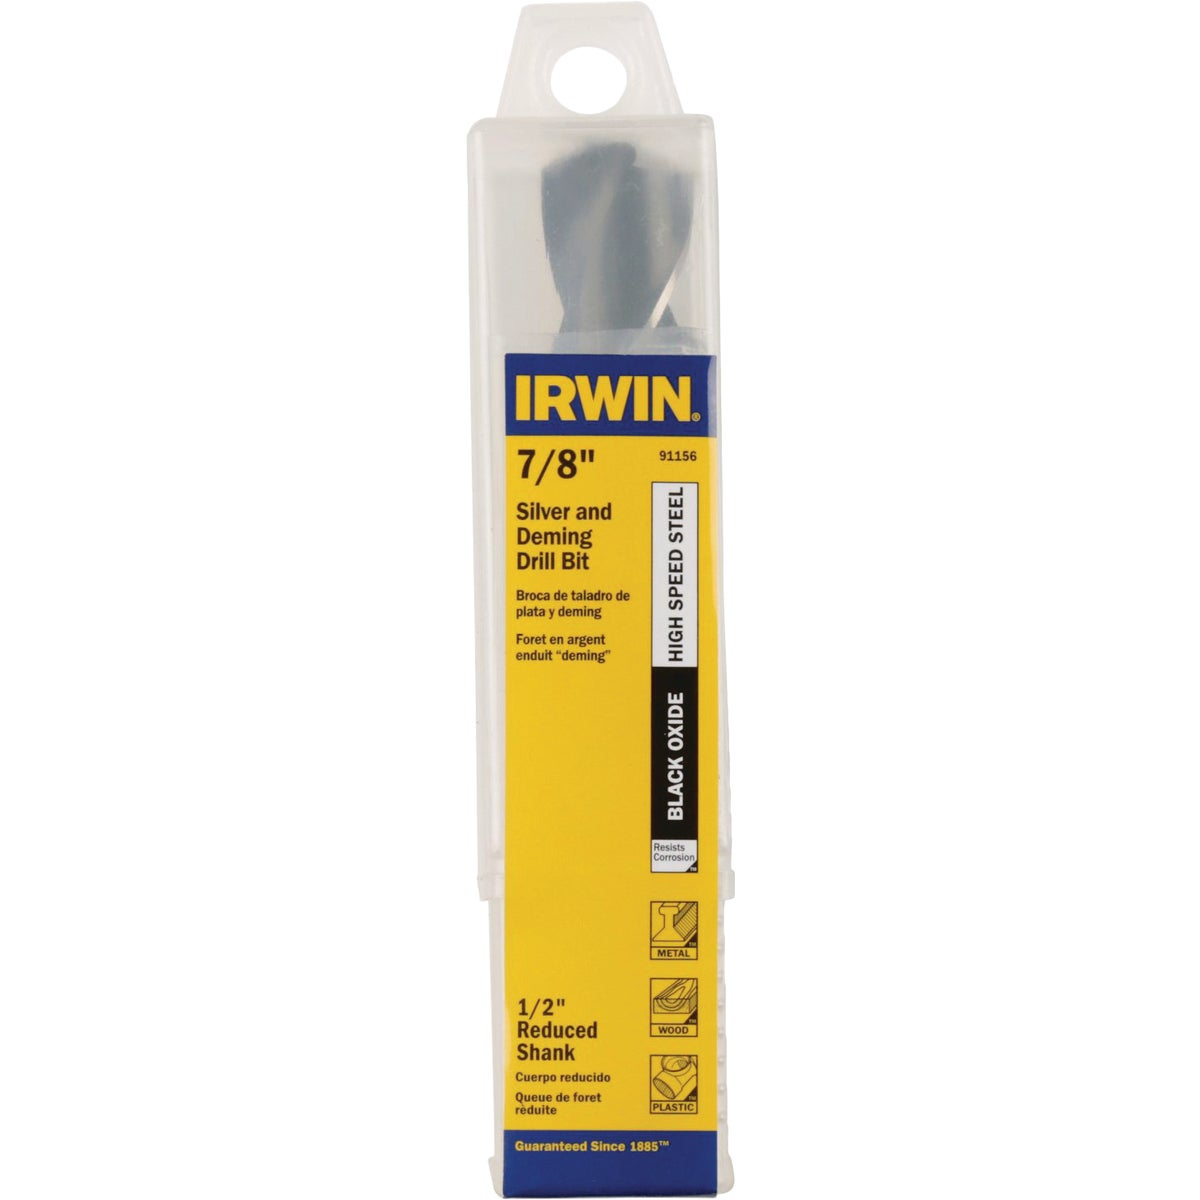 "7/8"" SPLIT POINT BIT - DW1627 by DeWalt"